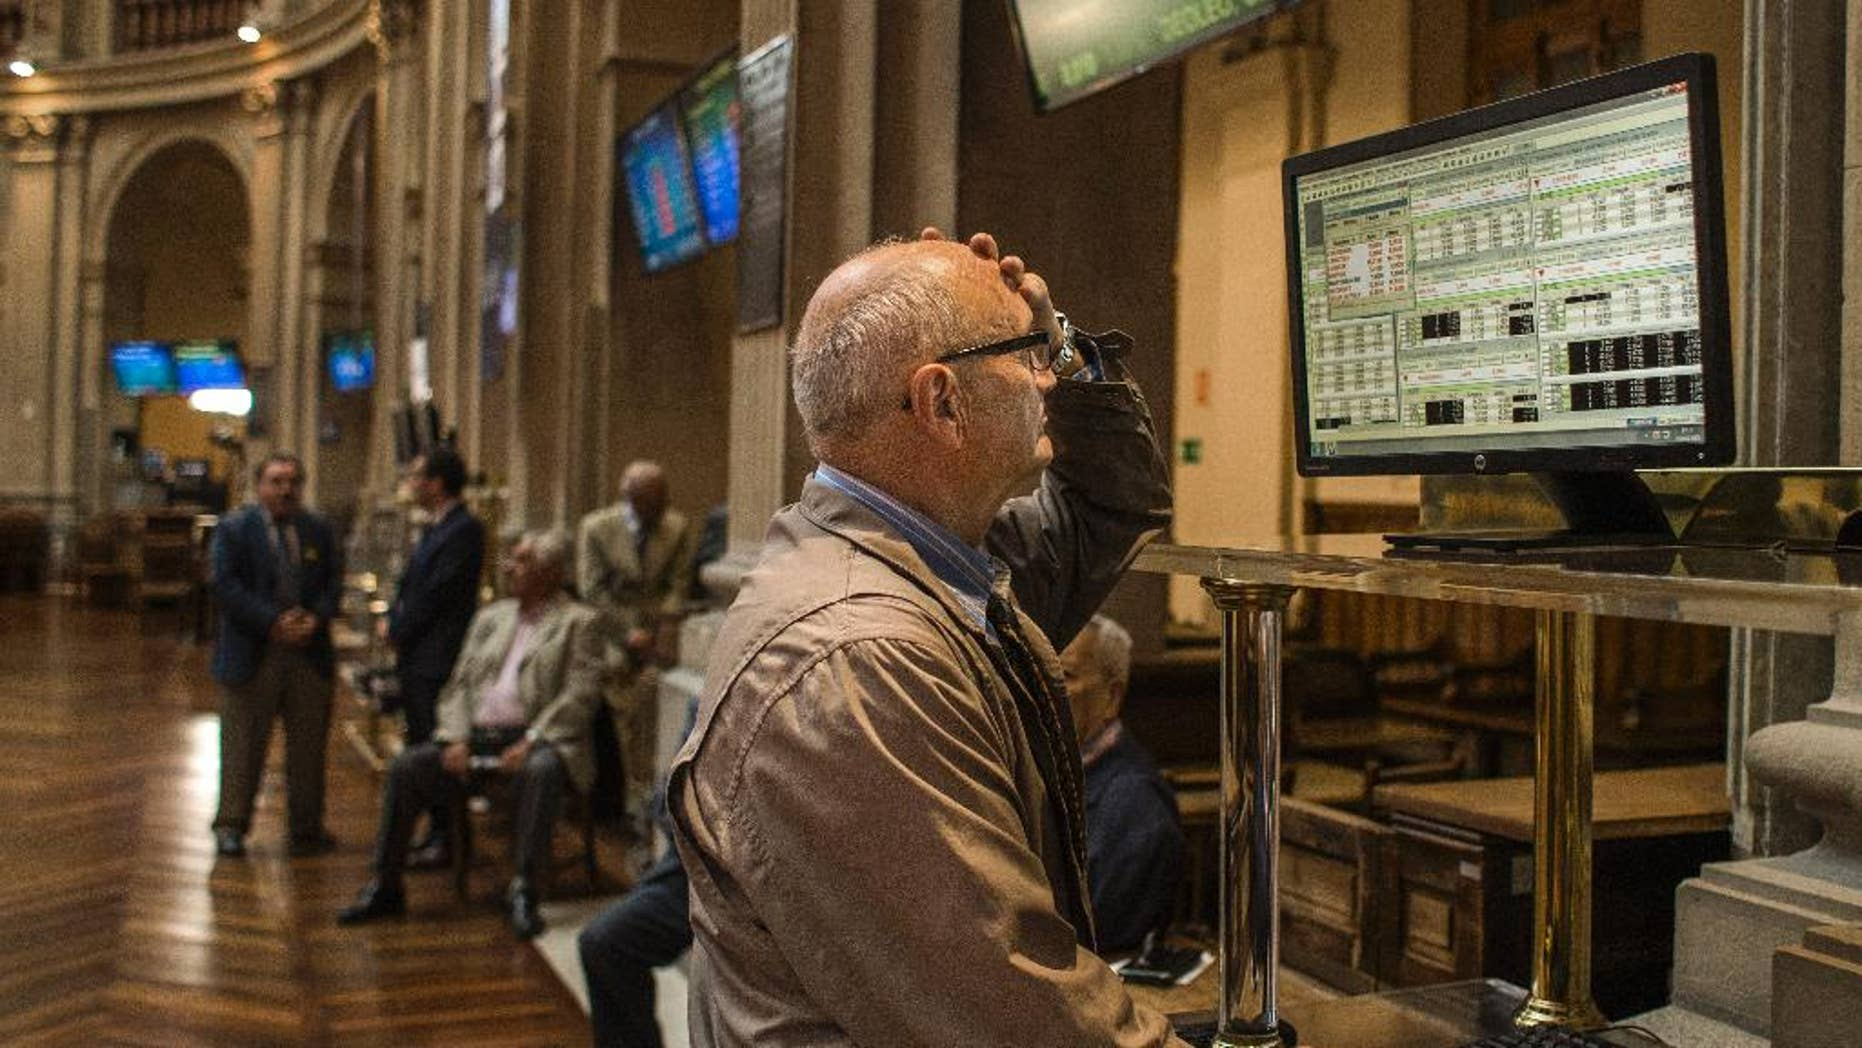 A broker gestures as he looks at a screen at the Stock Exchange in Madrid, Monday, June 29, 2015. Spain's economy minister has said a Greek debt deal is still reachable before a deadline on the nation's credit from the European Central Bank runs out at midnight Tuesday. Spain's benchmark Ibex stock index slid nearly 4 percent Monday morning. (AP Photo/Andres Kudacki)